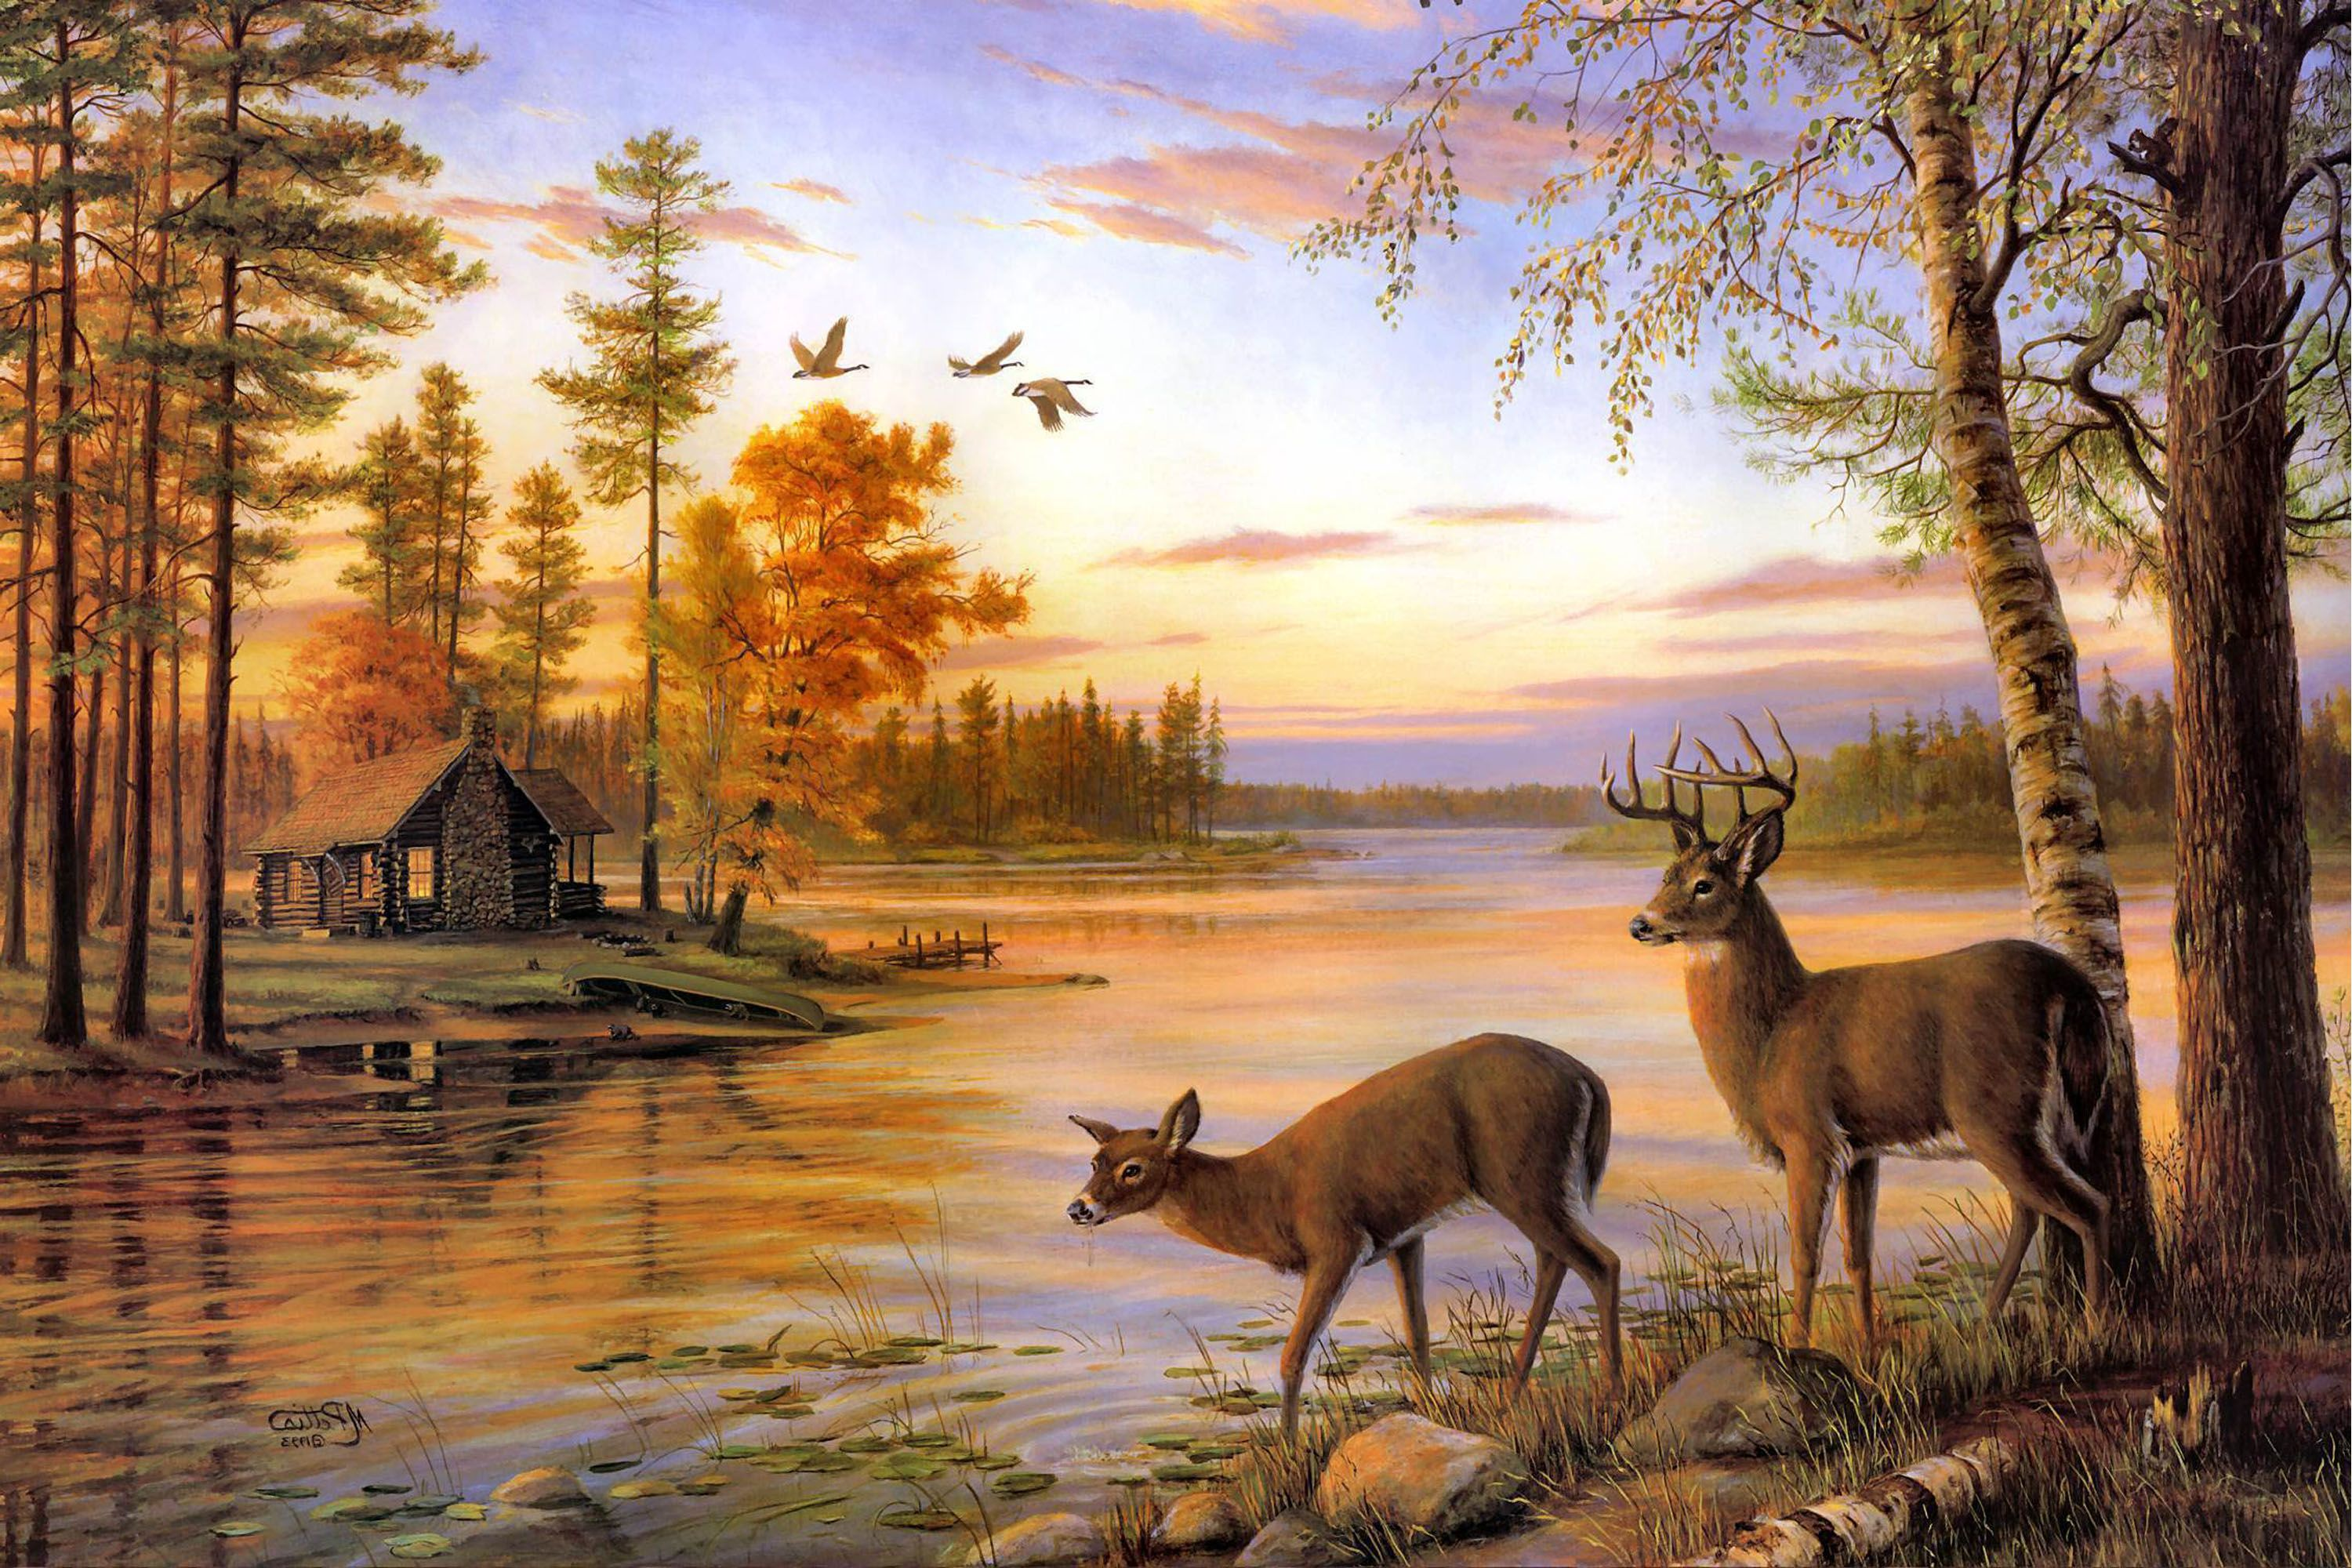 Two Deer Drink Water On The River When Sunset in 2020